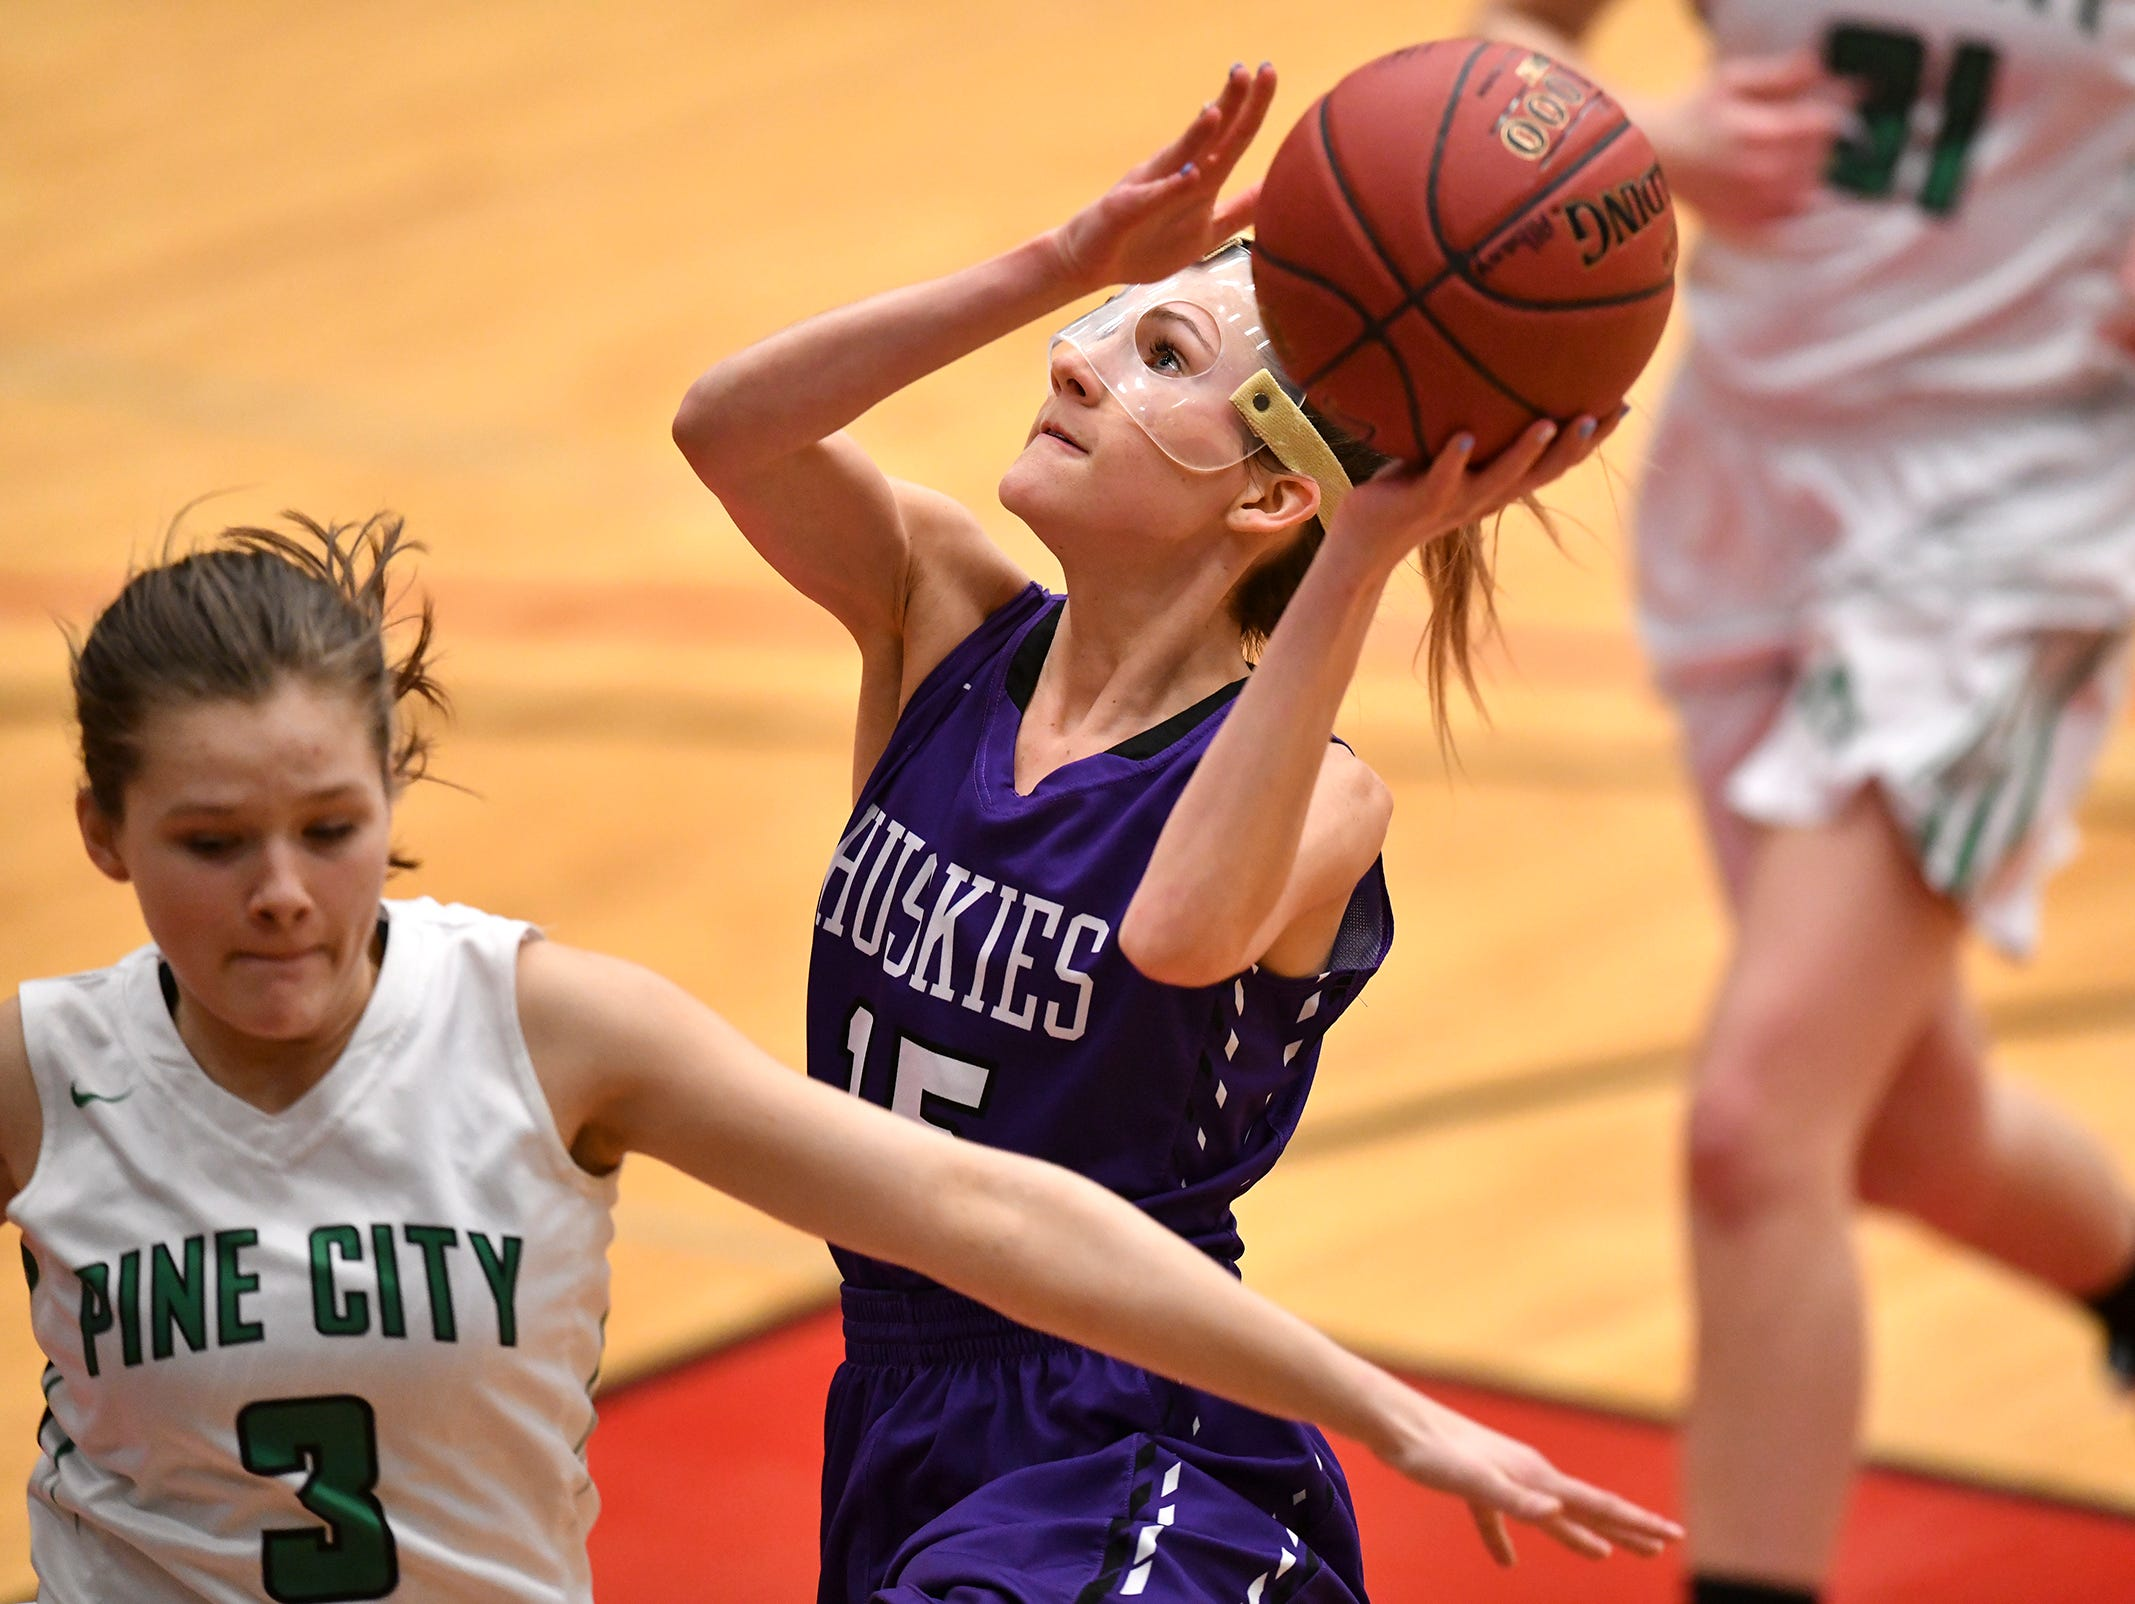 Albany's Paige Rueter puts up a shot  during the Section 6-2A championship game against Pine City Friday, March 8, at Halenbeck Hall in St. Cloud.